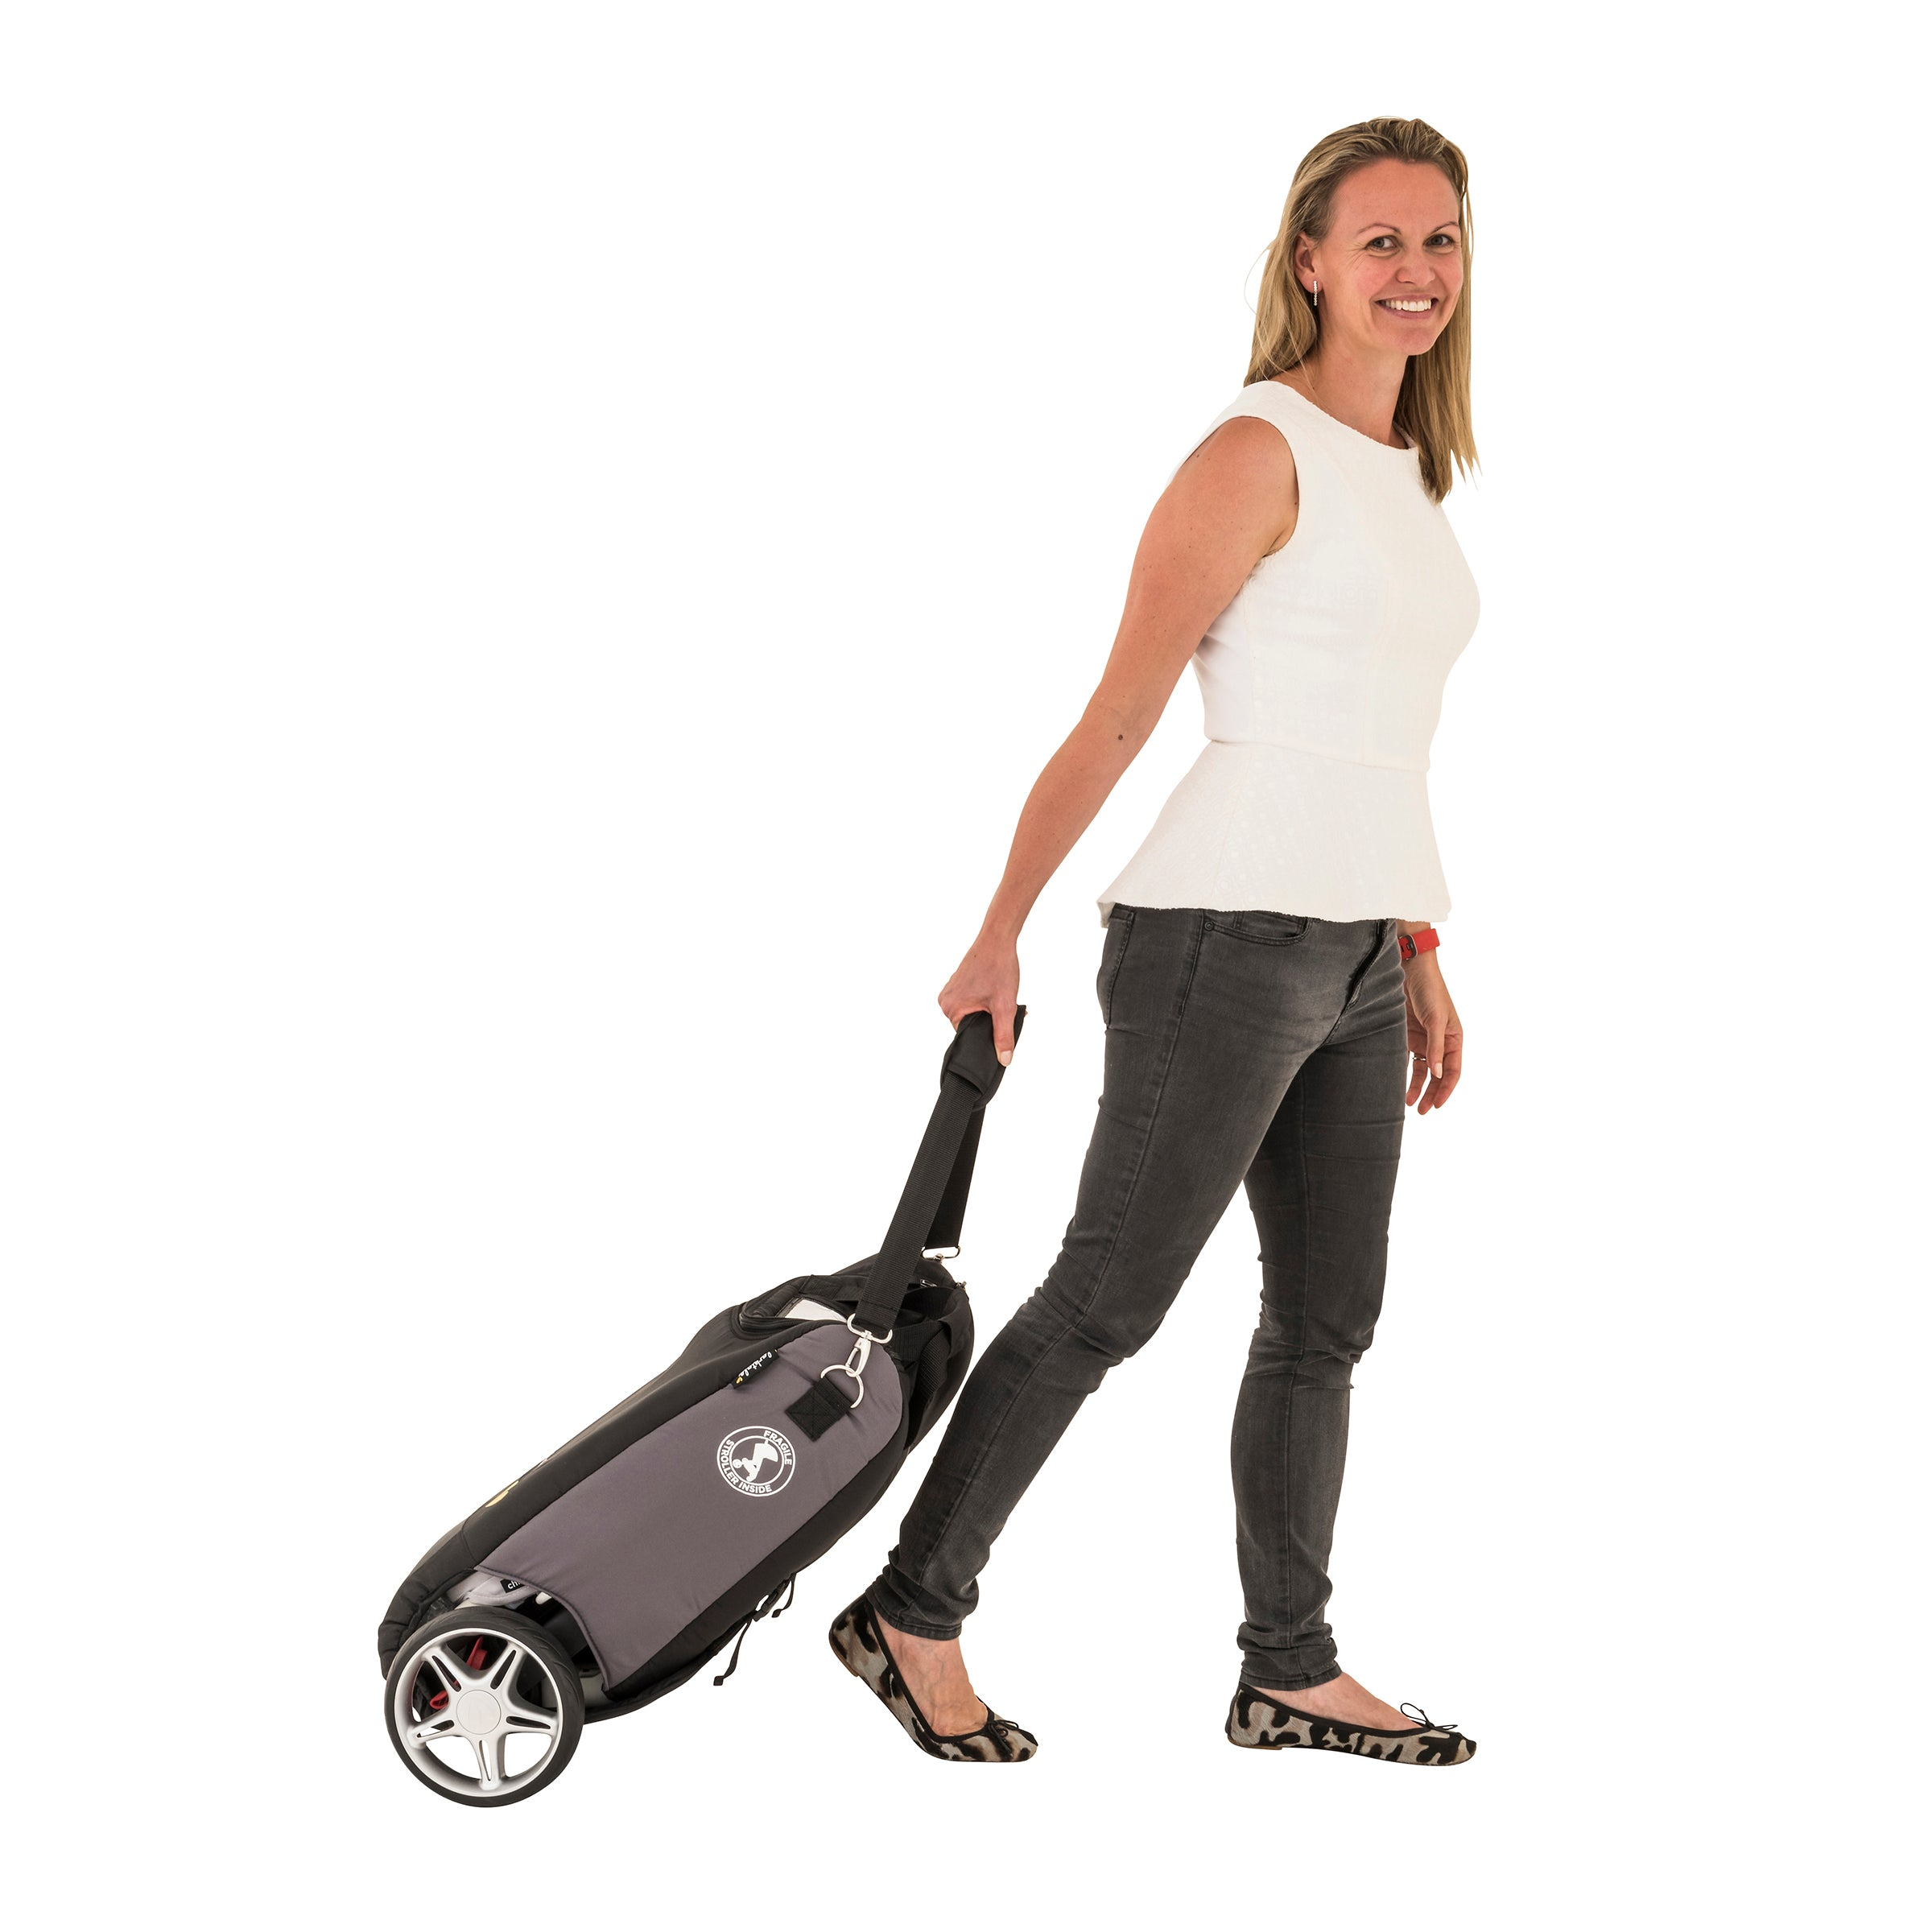 woman wheels the chit chat stroller in the travel bag along like luggage